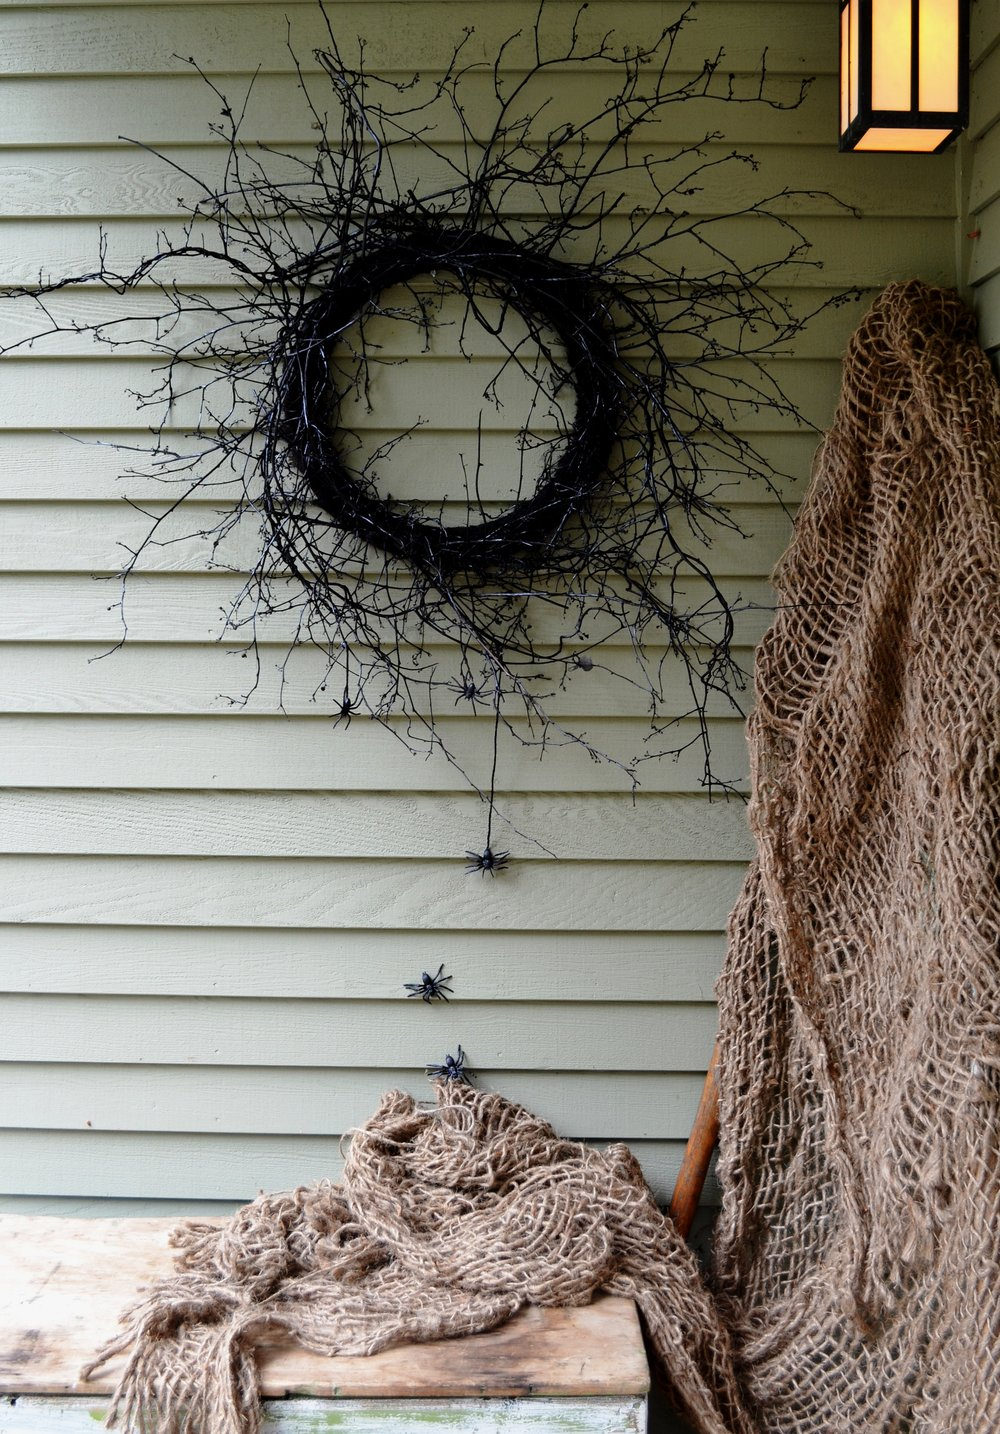 A friend and I went out into the woods and got some vines, cut them down and wrapped them around a wooden floral form with wire. Then I sprayed it all black and hung some plastic spiders off of it...Seriously simple! Halloween wreaths...gotta love it!